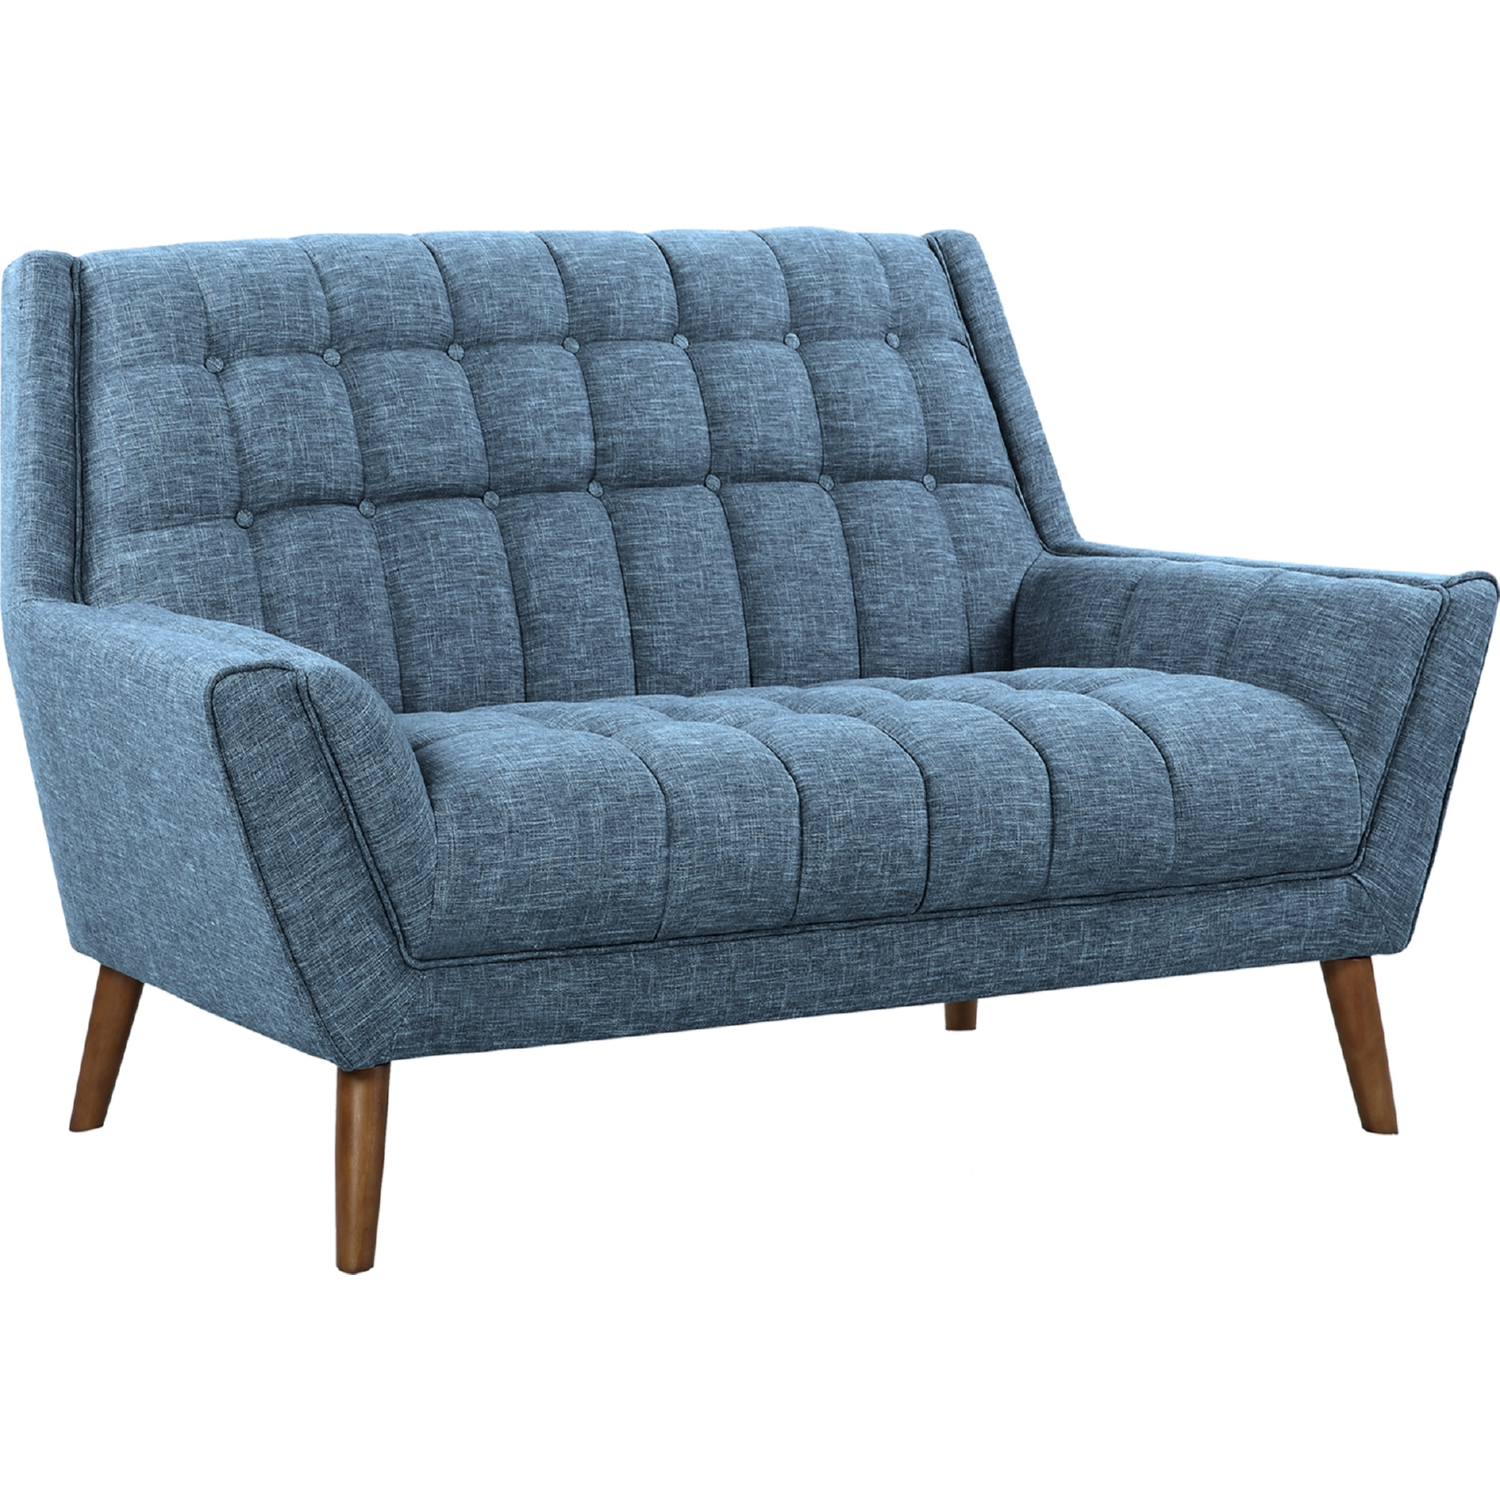 Incredible Cobra Mid Century Modern Loveseat In Tufted Blue Linen On Walnut Legs By Armen Living Bralicious Painted Fabric Chair Ideas Braliciousco